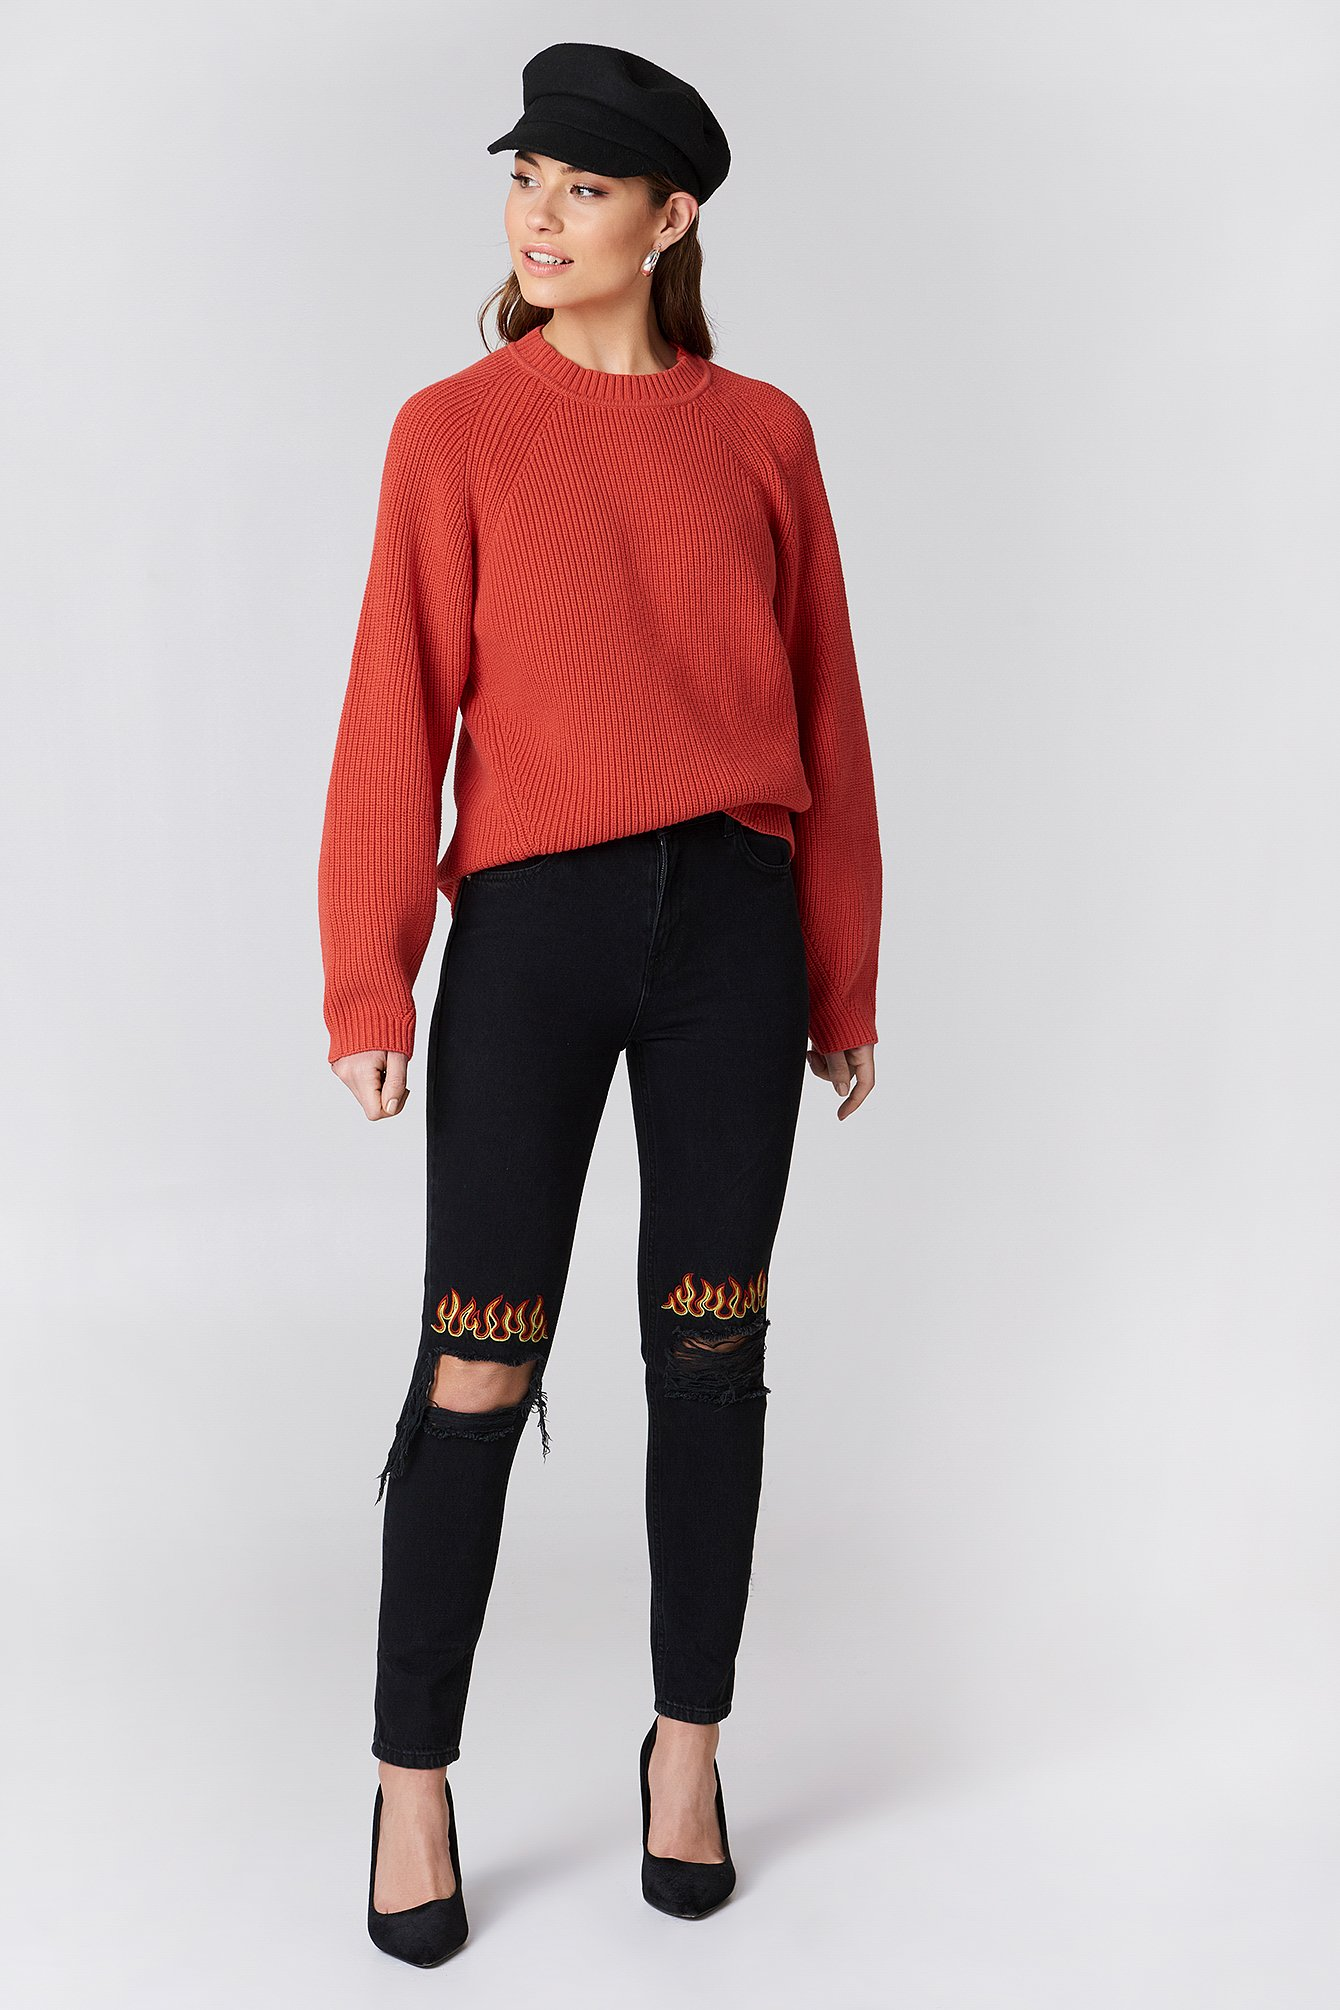 Ripped Knee Flame Embroidery Jeans NA-KD.COM